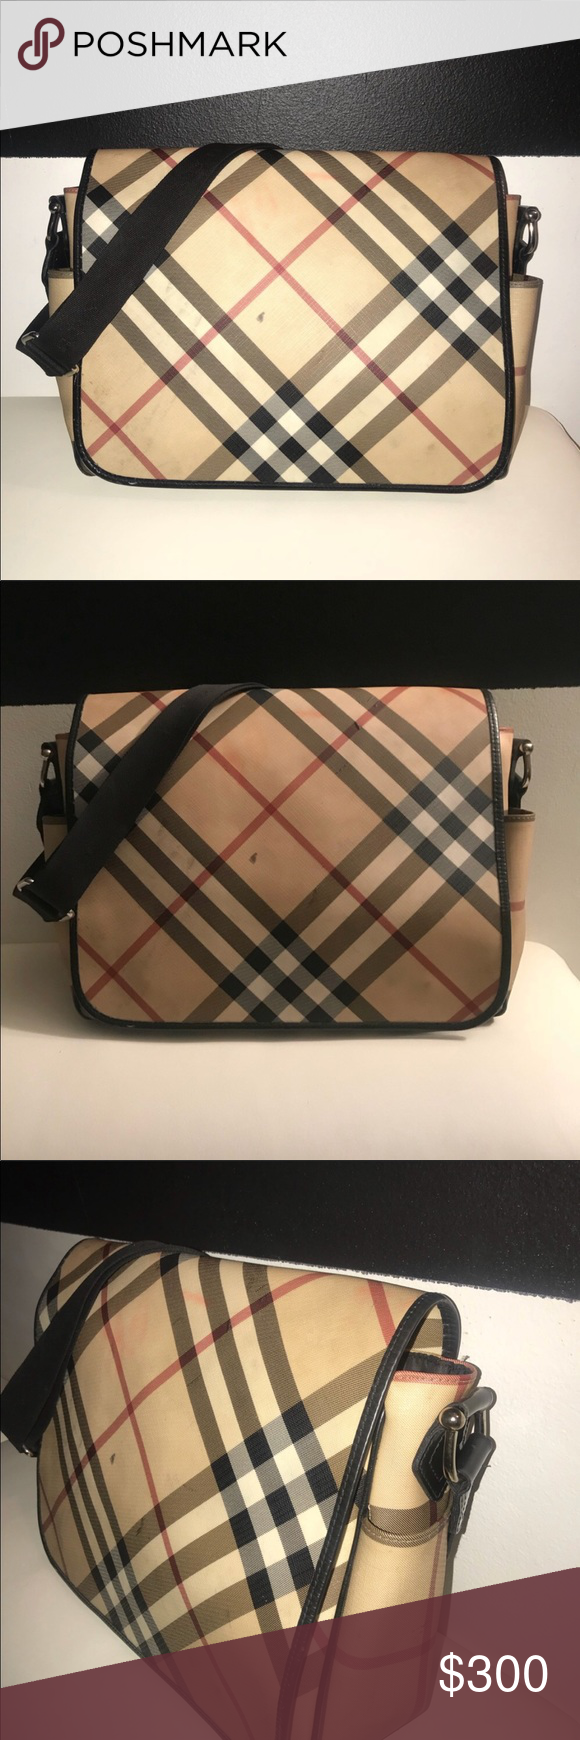 e53aac5635b4 Burberry baby bag Burberry Canvas Nova Check Messenger diaper bag. This bag  is good condition and very durable. Plenty space for all of babies daily ...